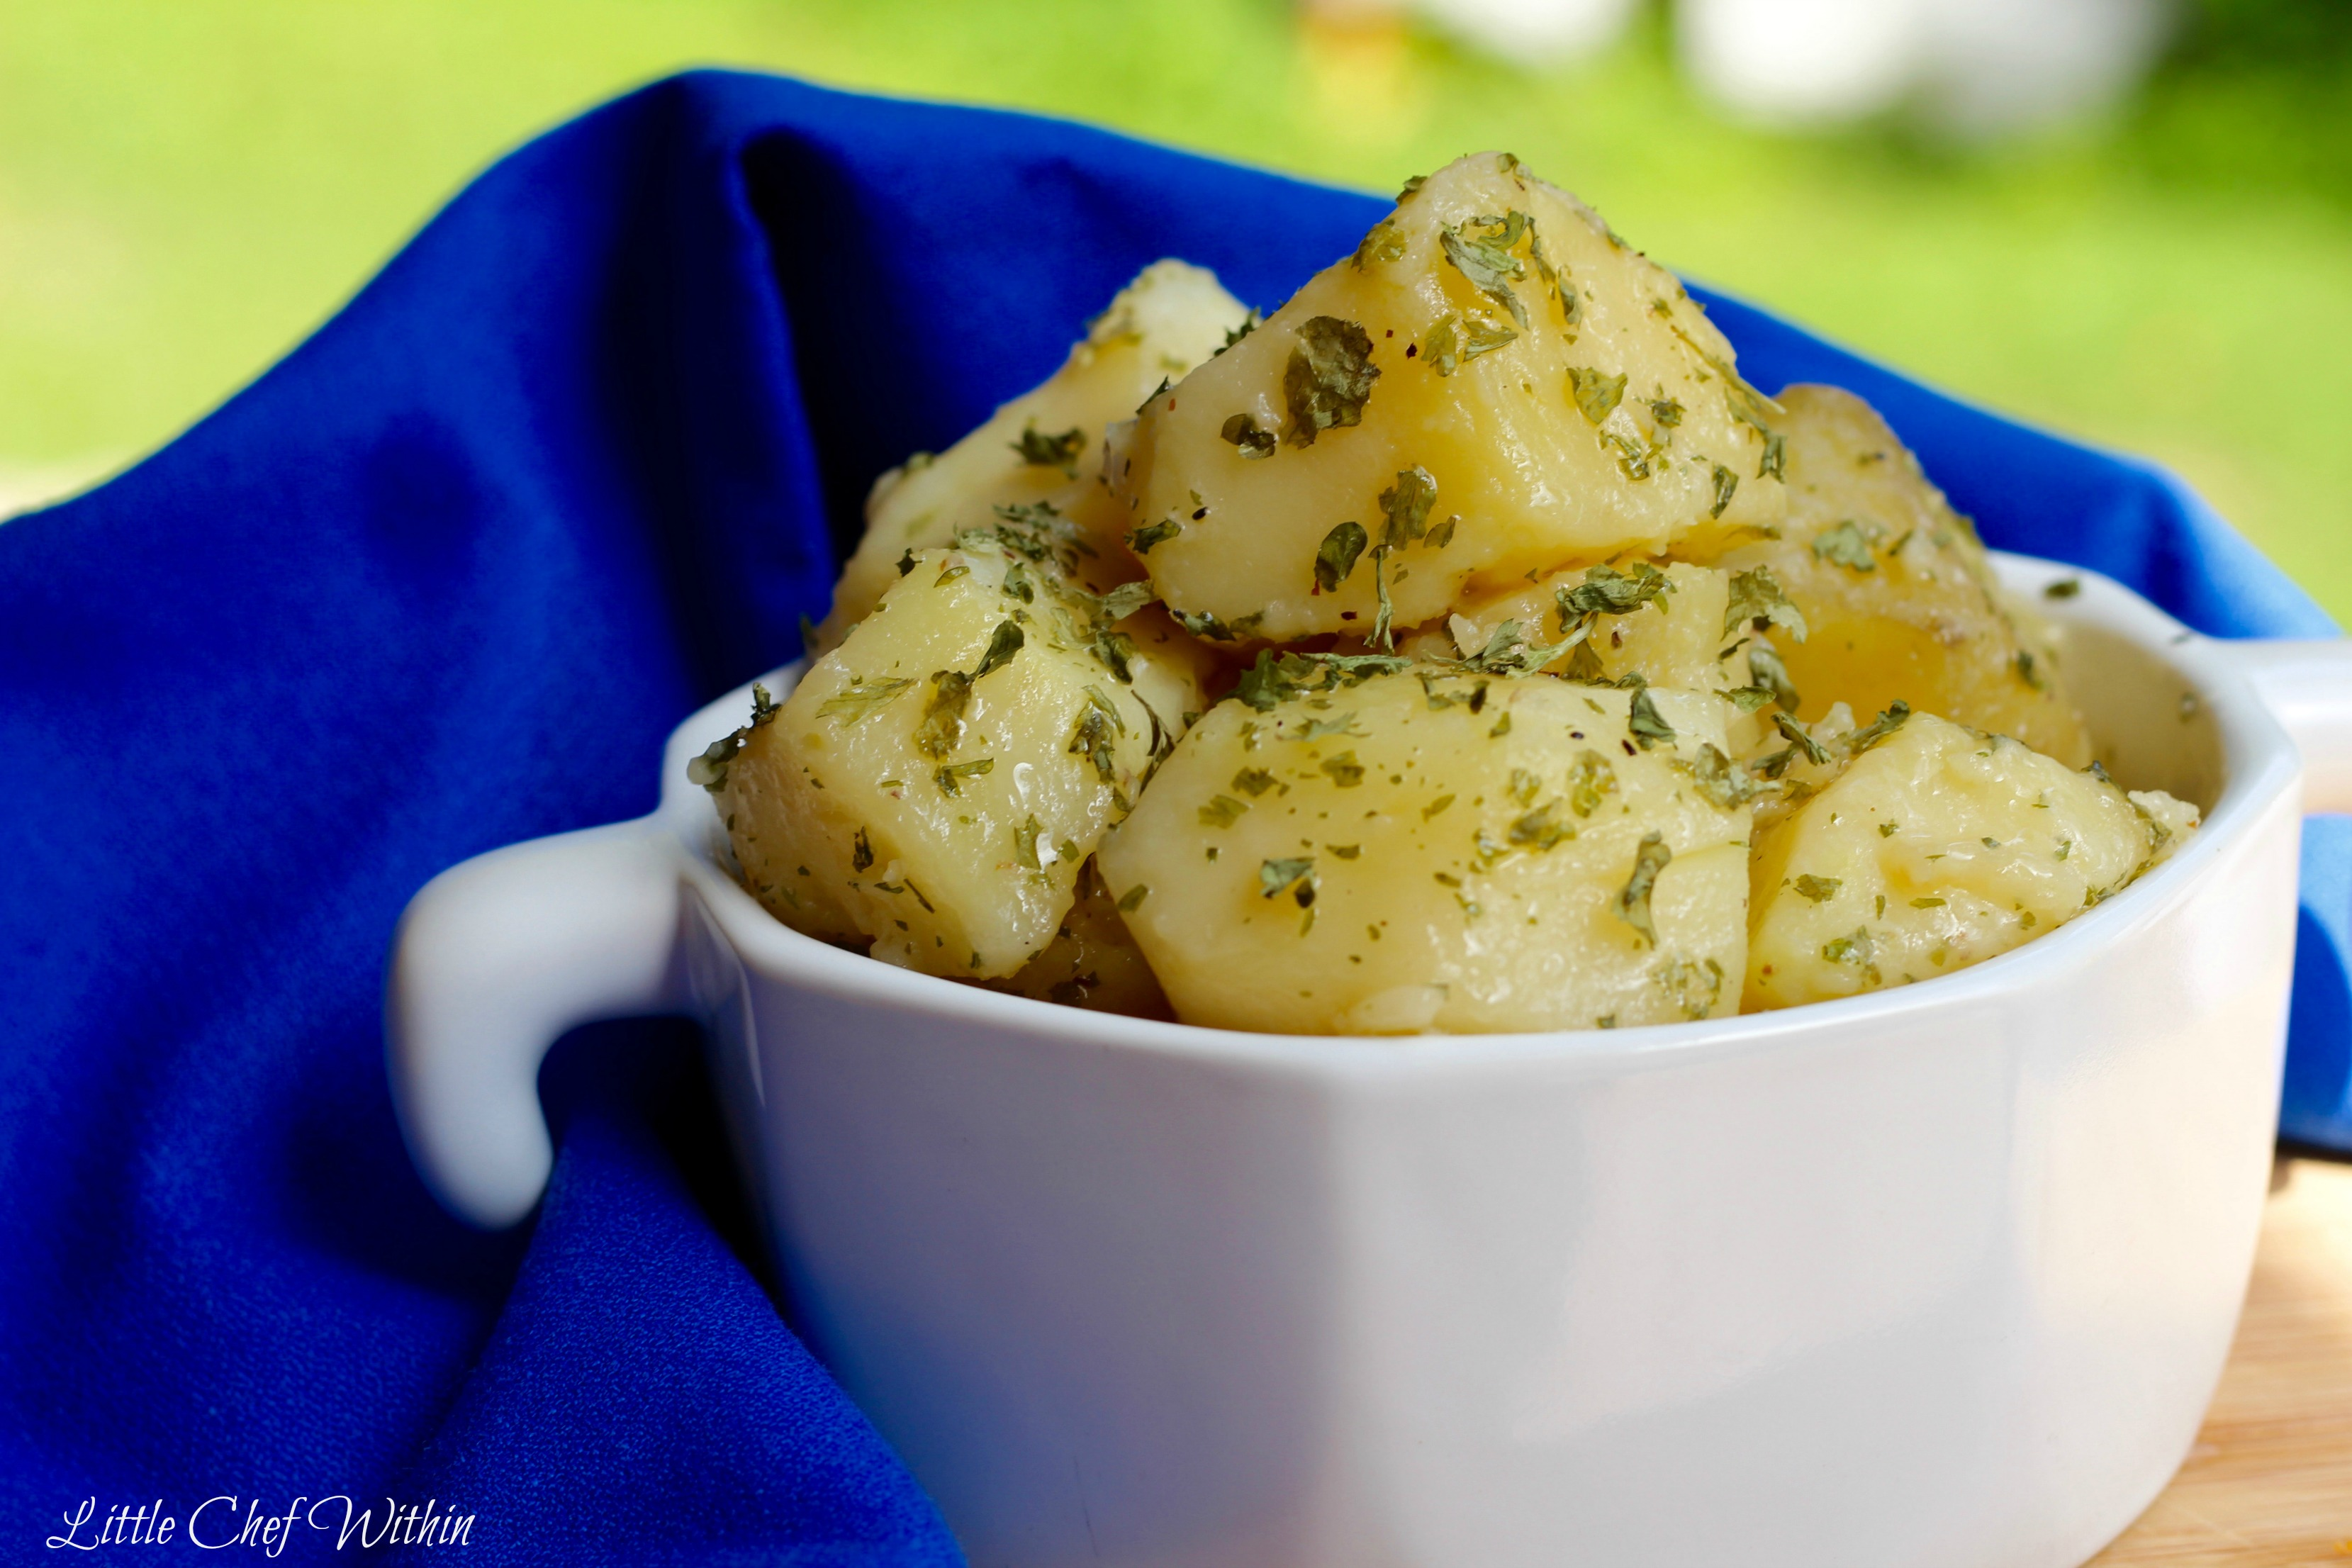 Herbed buttered Potatoes (Stovetop)